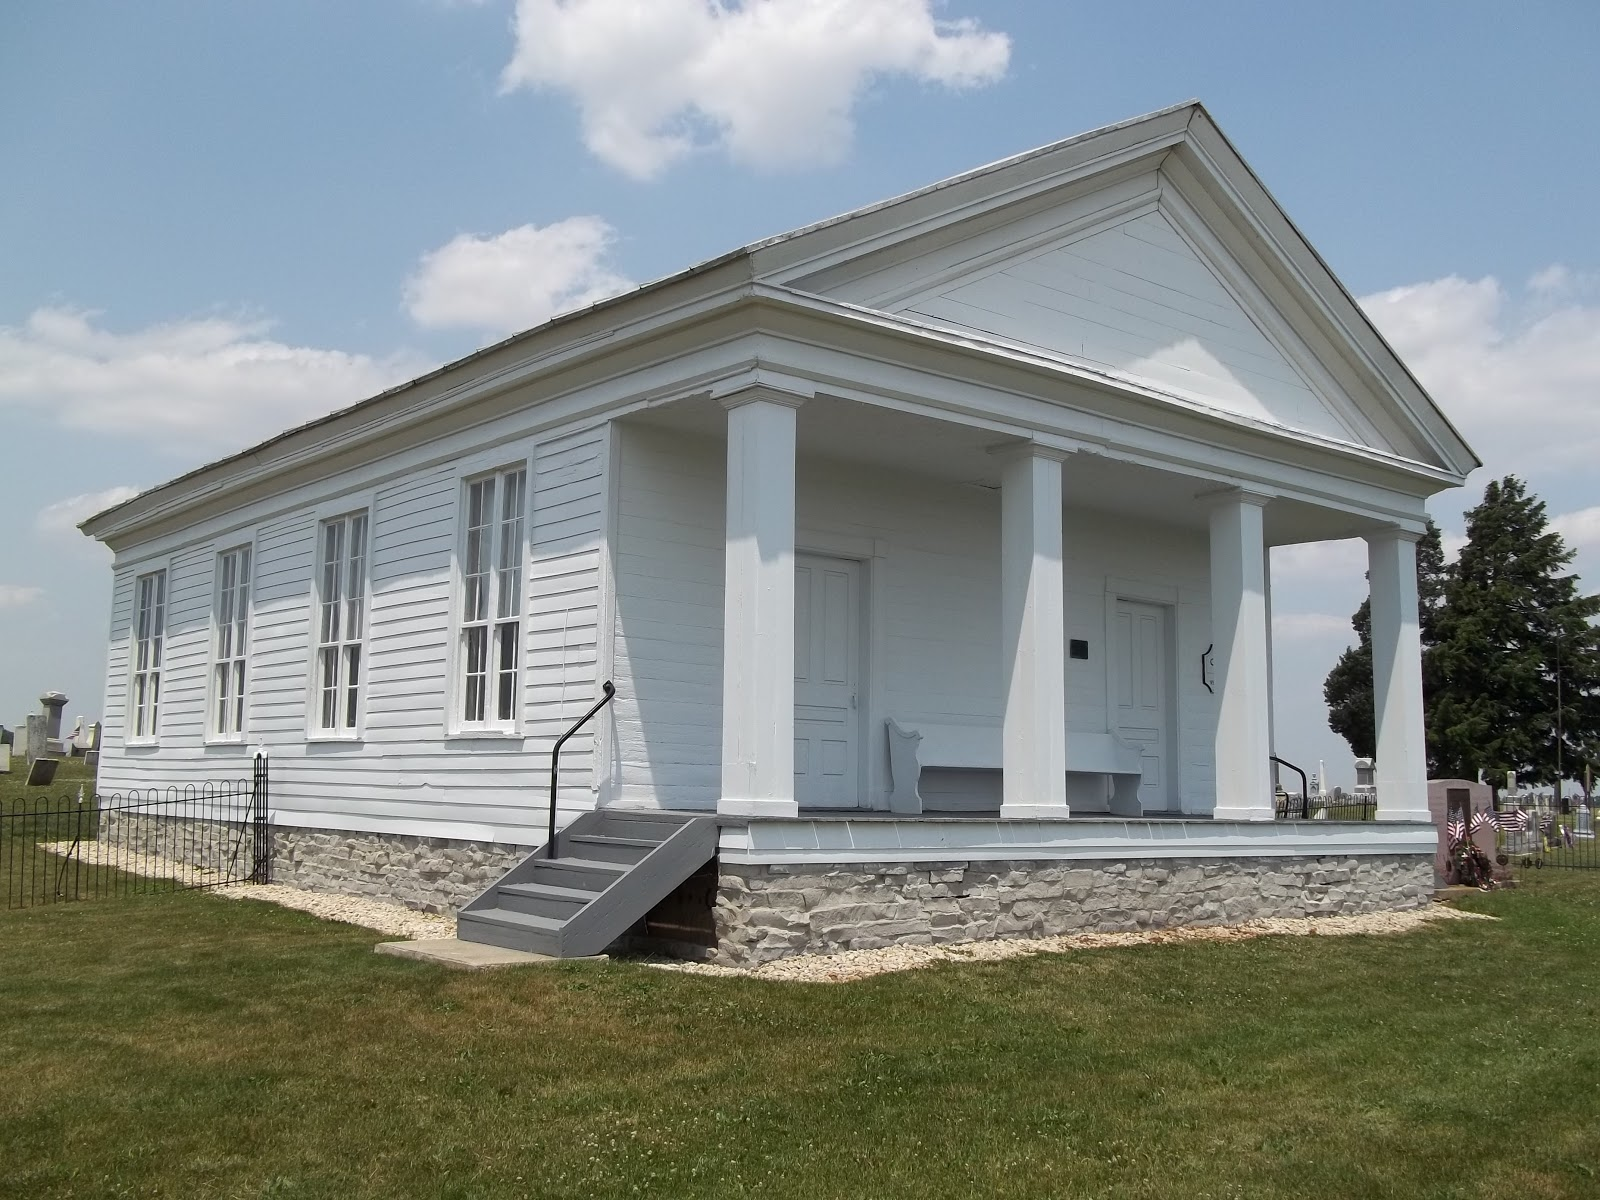 omar chapel showing new paint and new foundaton